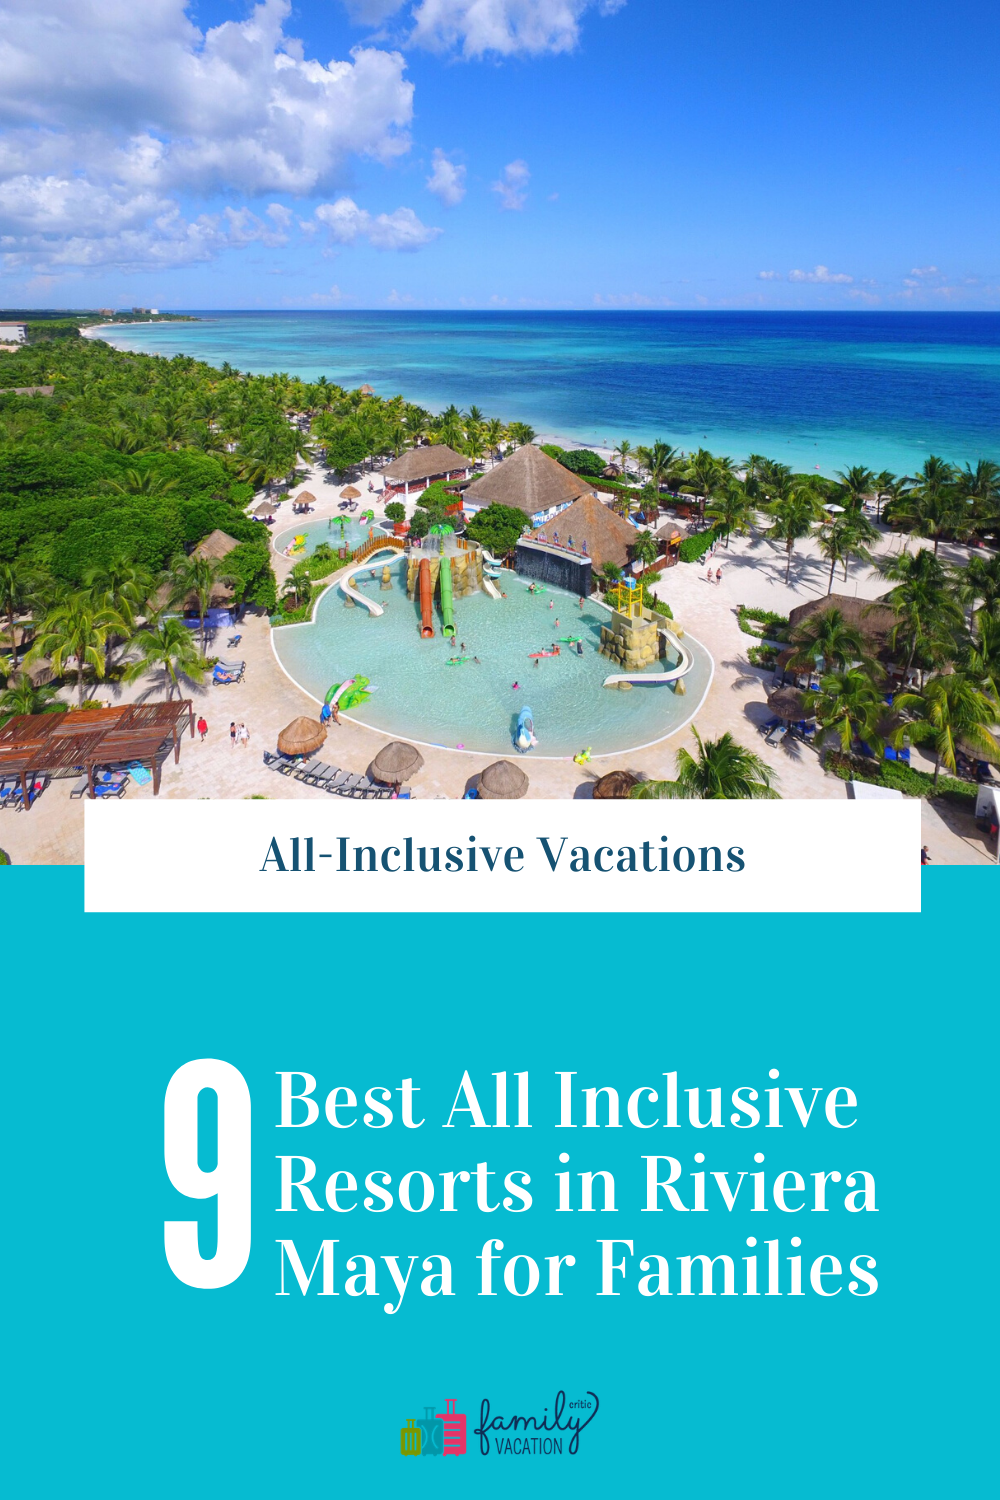 The Riviera Maya Is One Of The Best Destinations In Mexico For Families Just 45 To 90 Minutes Riviera Maya Resorts Mexico Family Vacation Best Family Resorts